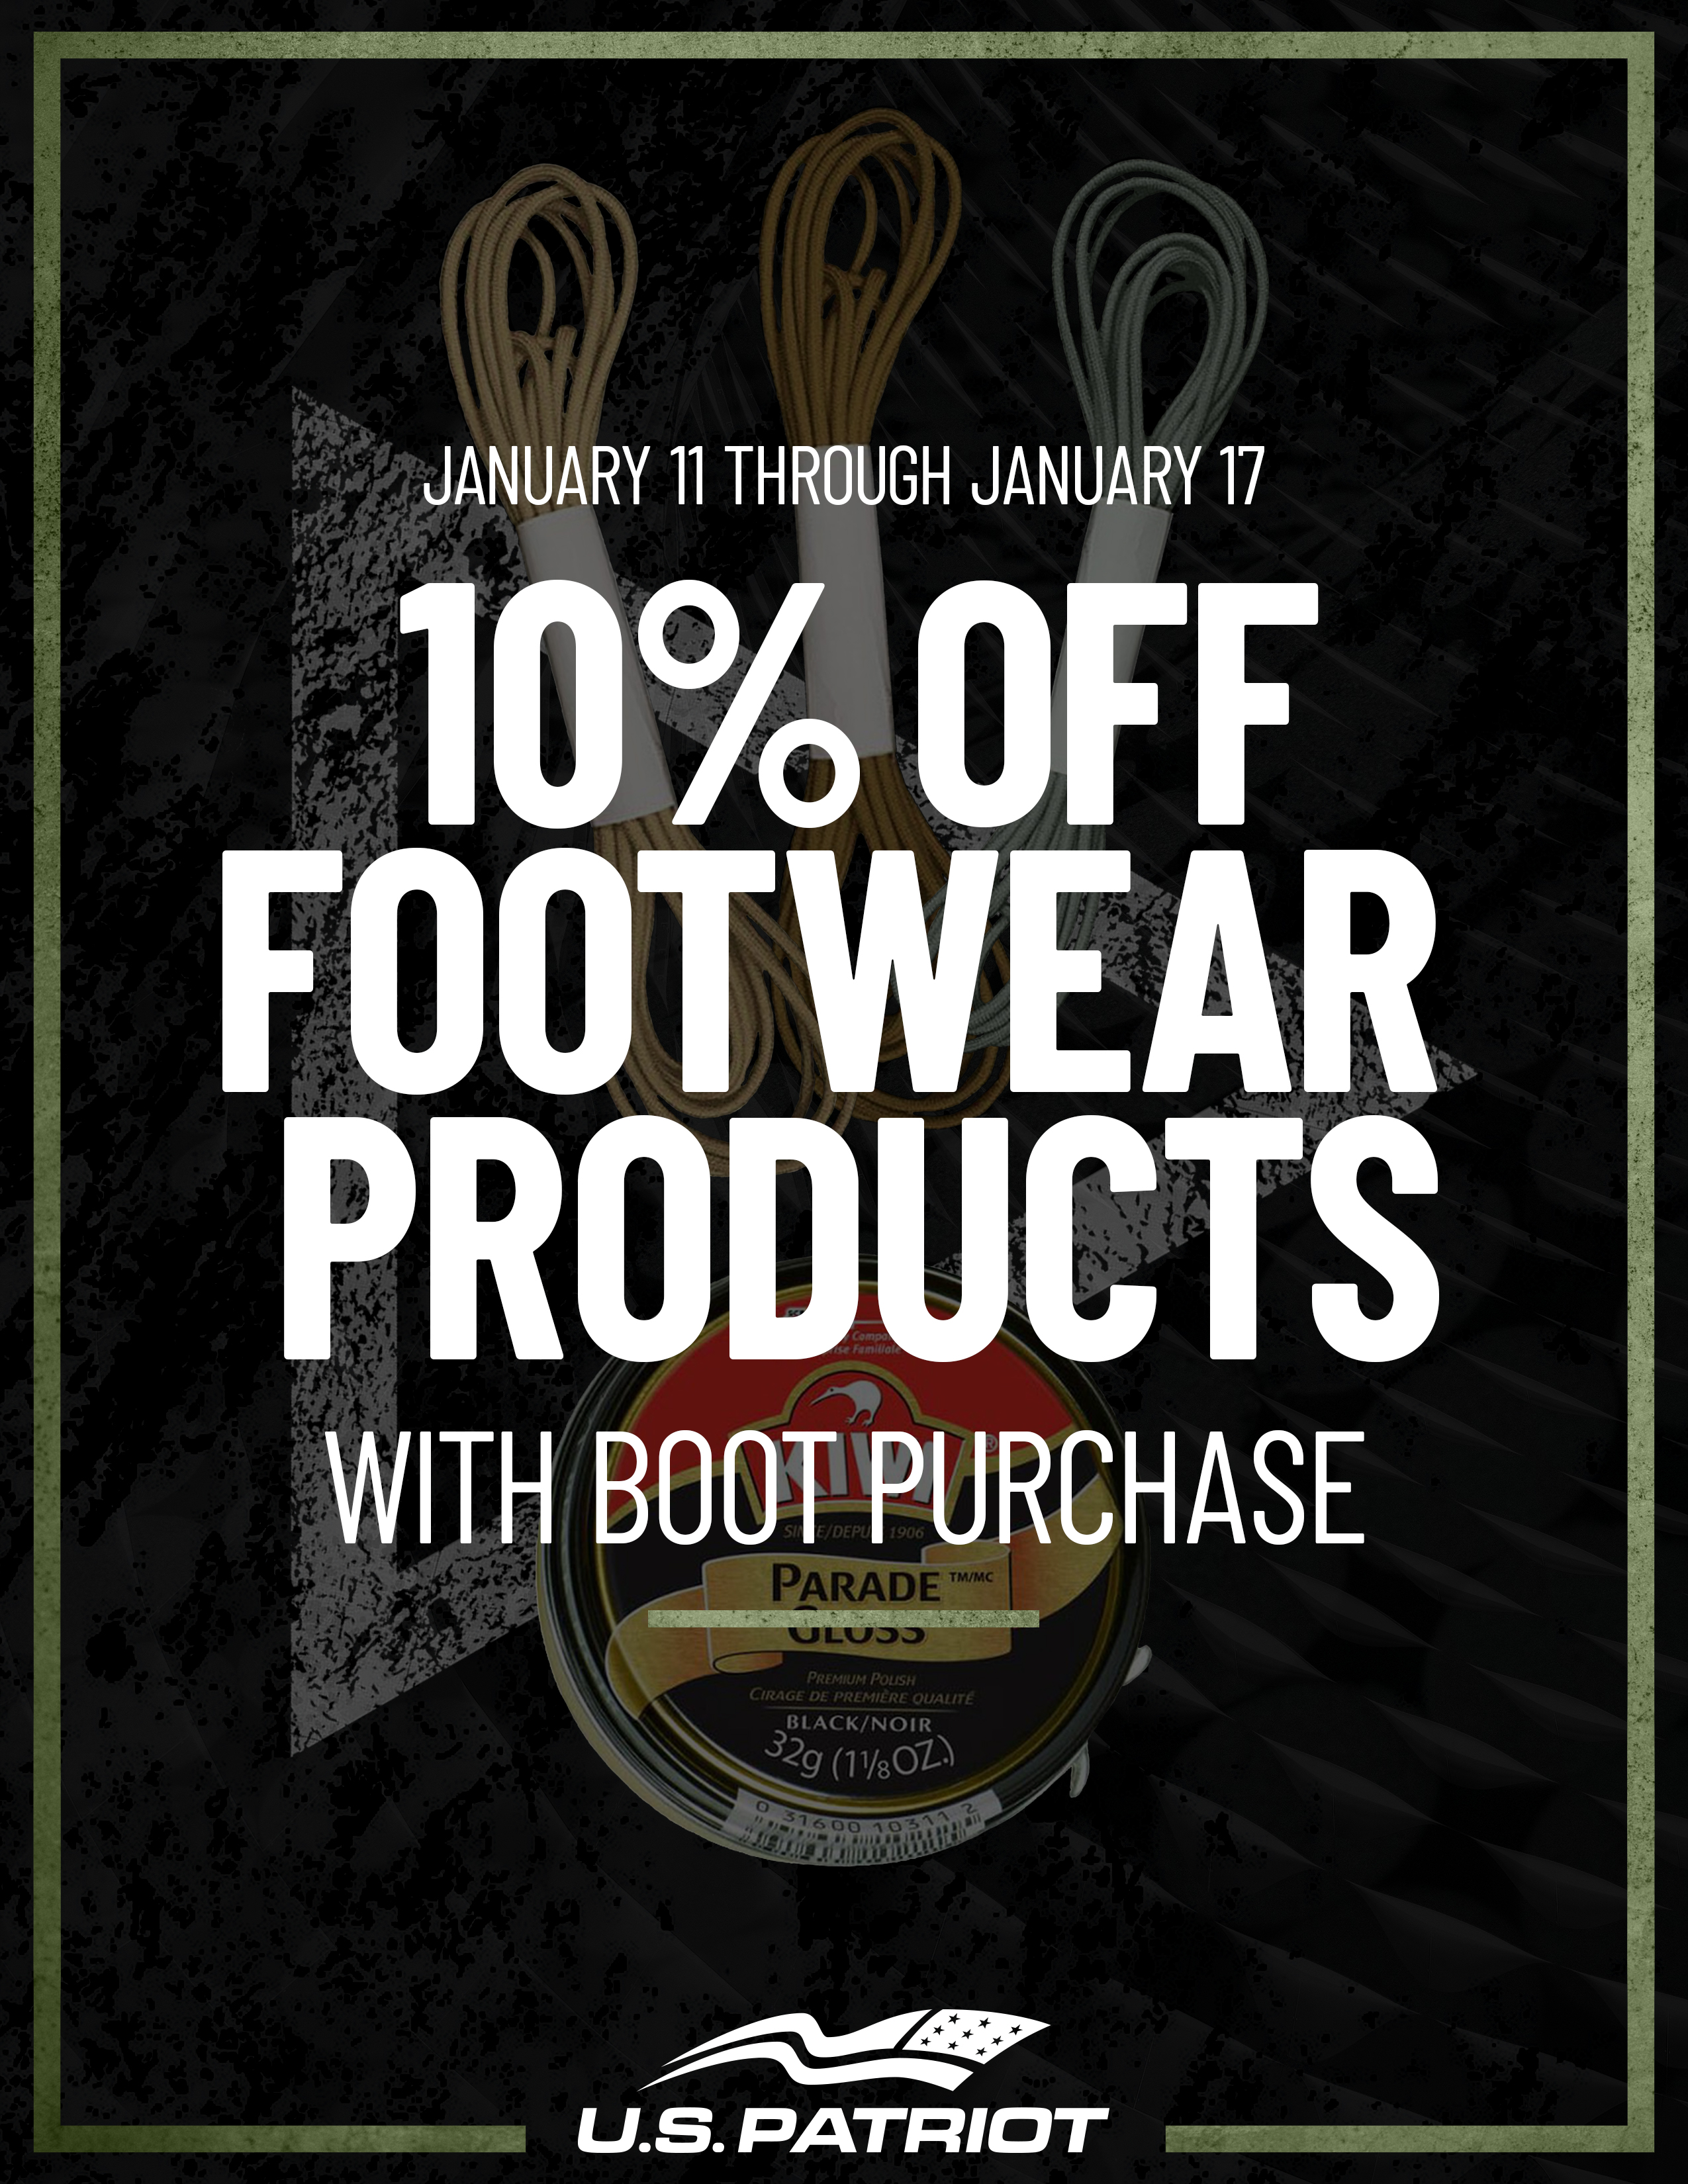 10% Off Footwear Products